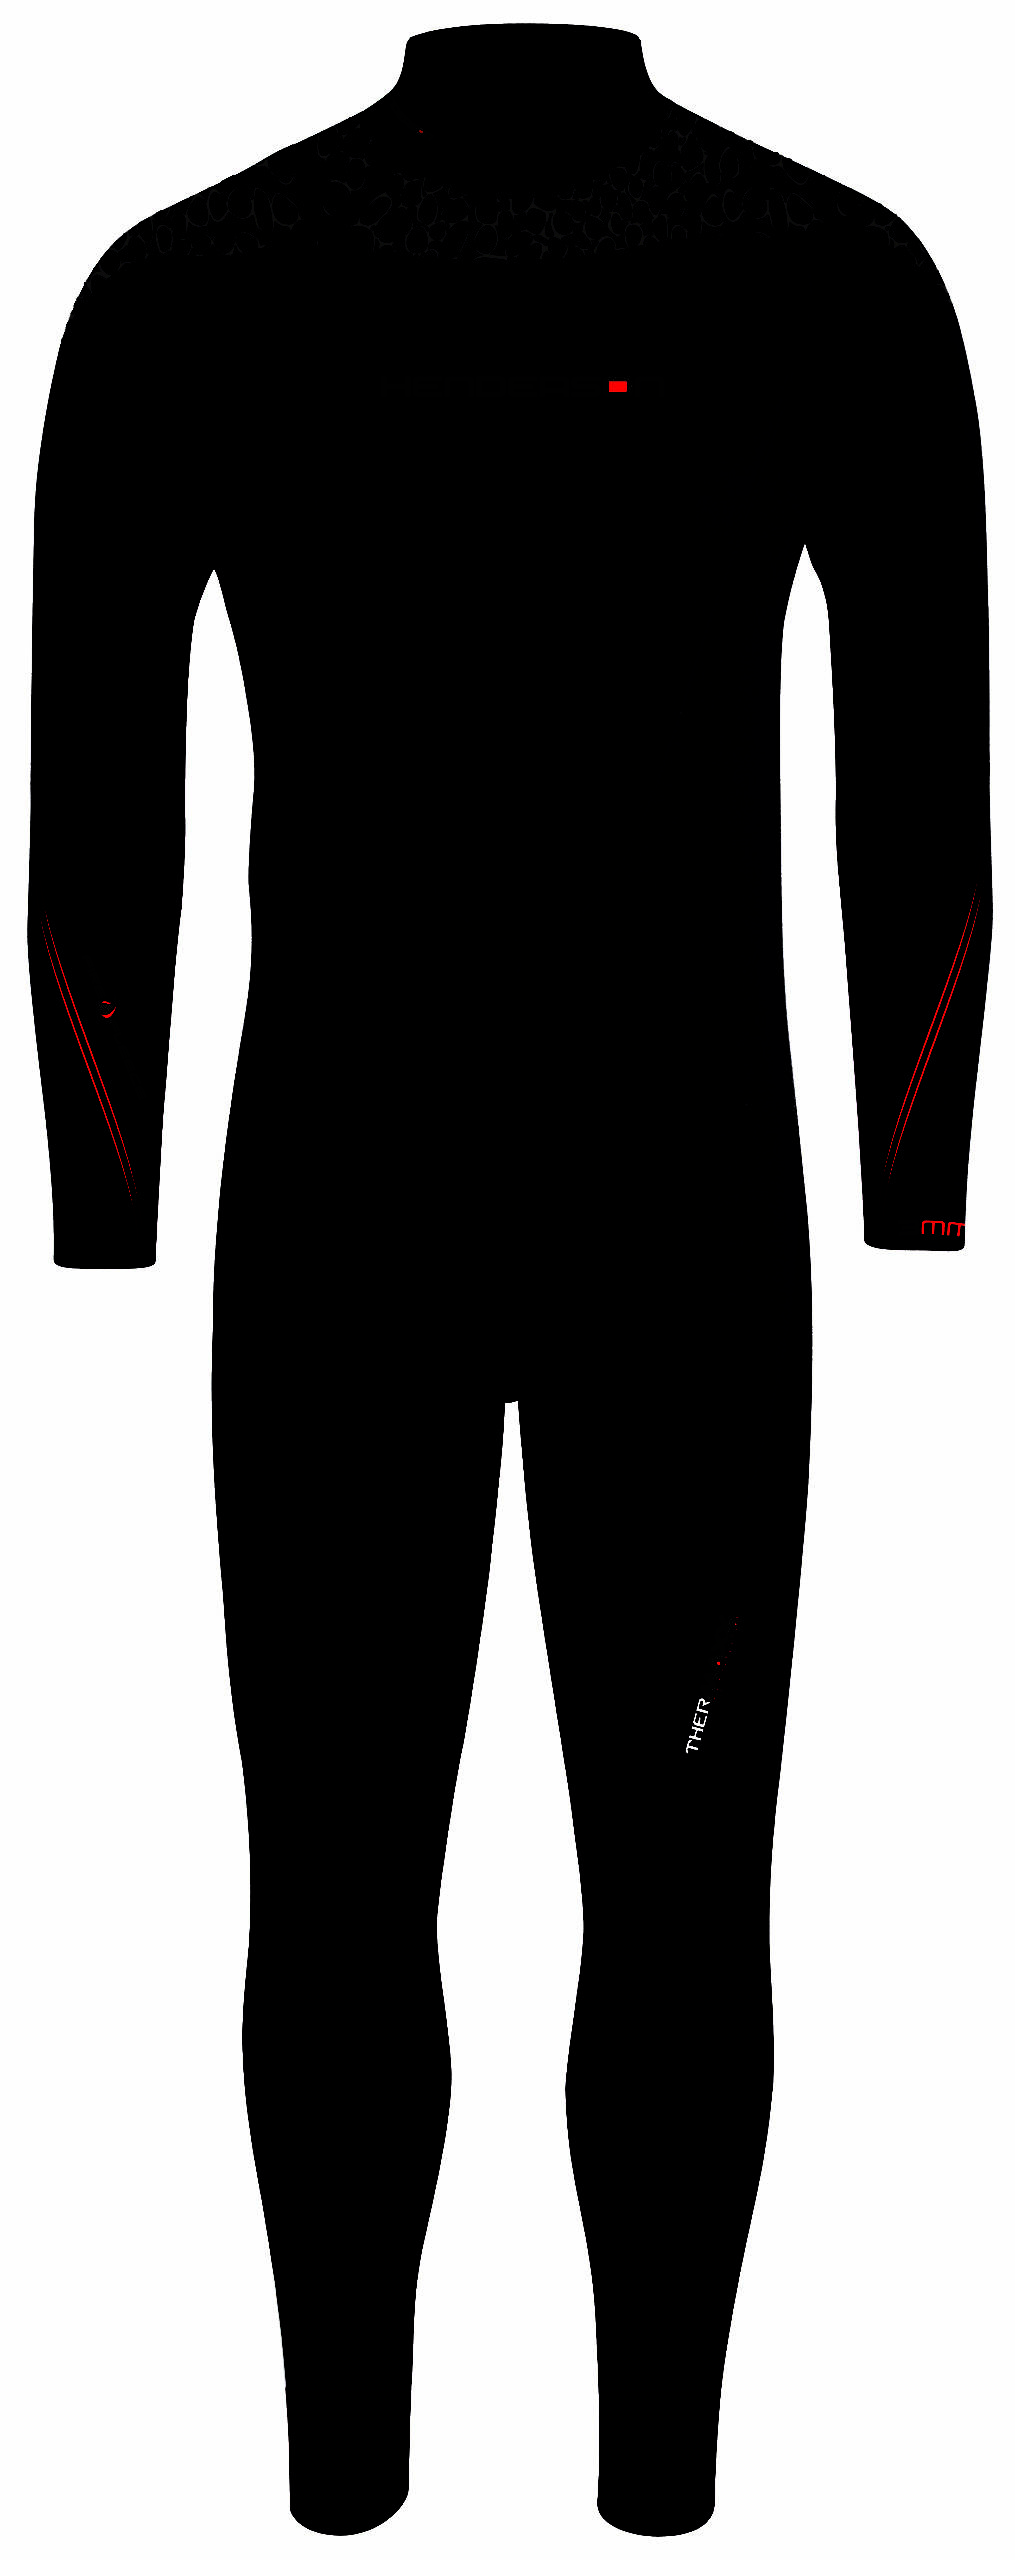 T805MB_01_thermaxx_M_Back_Zip_black_FRONT-scaled.jpg